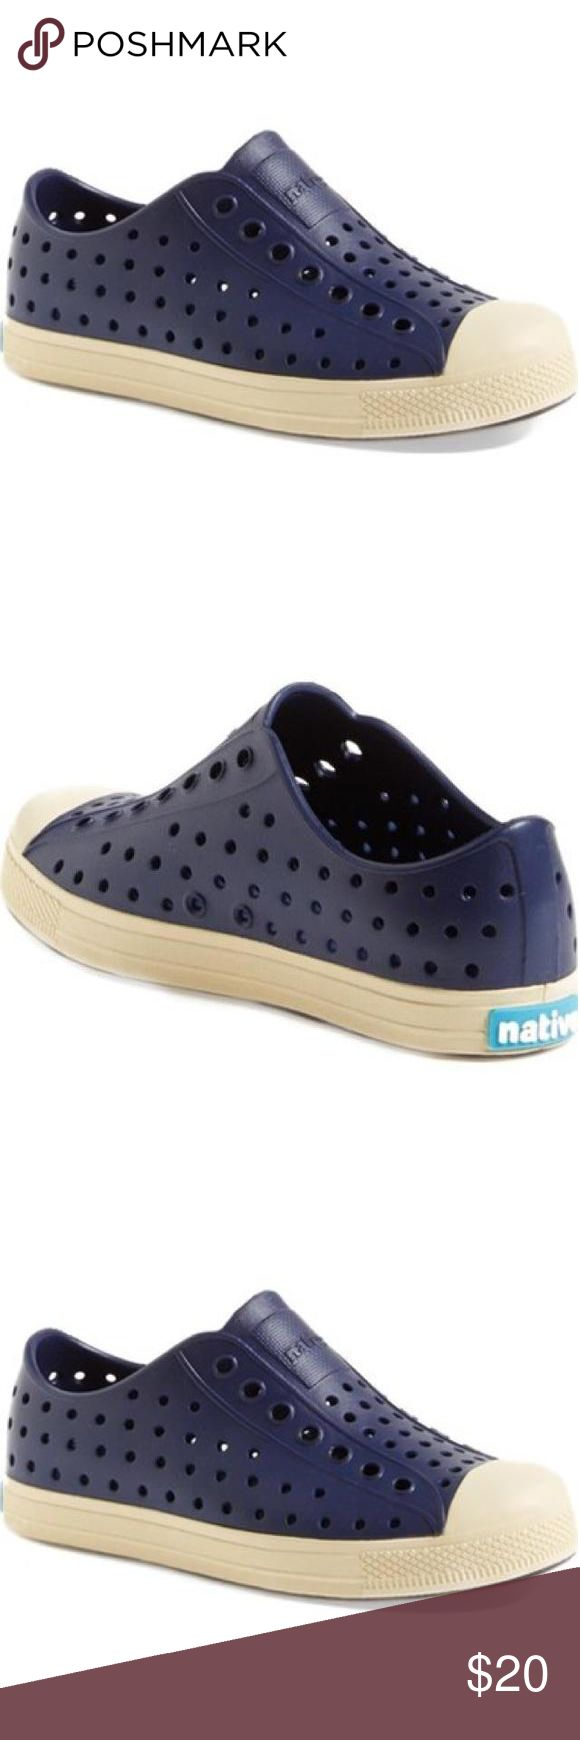 Navy Natives Youth Size 3 New Kids size 3. New. A classic sneaker silhouette is updated in ultra-lightweight EVA for a comfortable, cushioned feel. Allover perforations ensure feet stay cool and dry. KEEP IT LITE super lightweight construction. EVA upper, lining and sole. By Native Shoes Natives Shoes